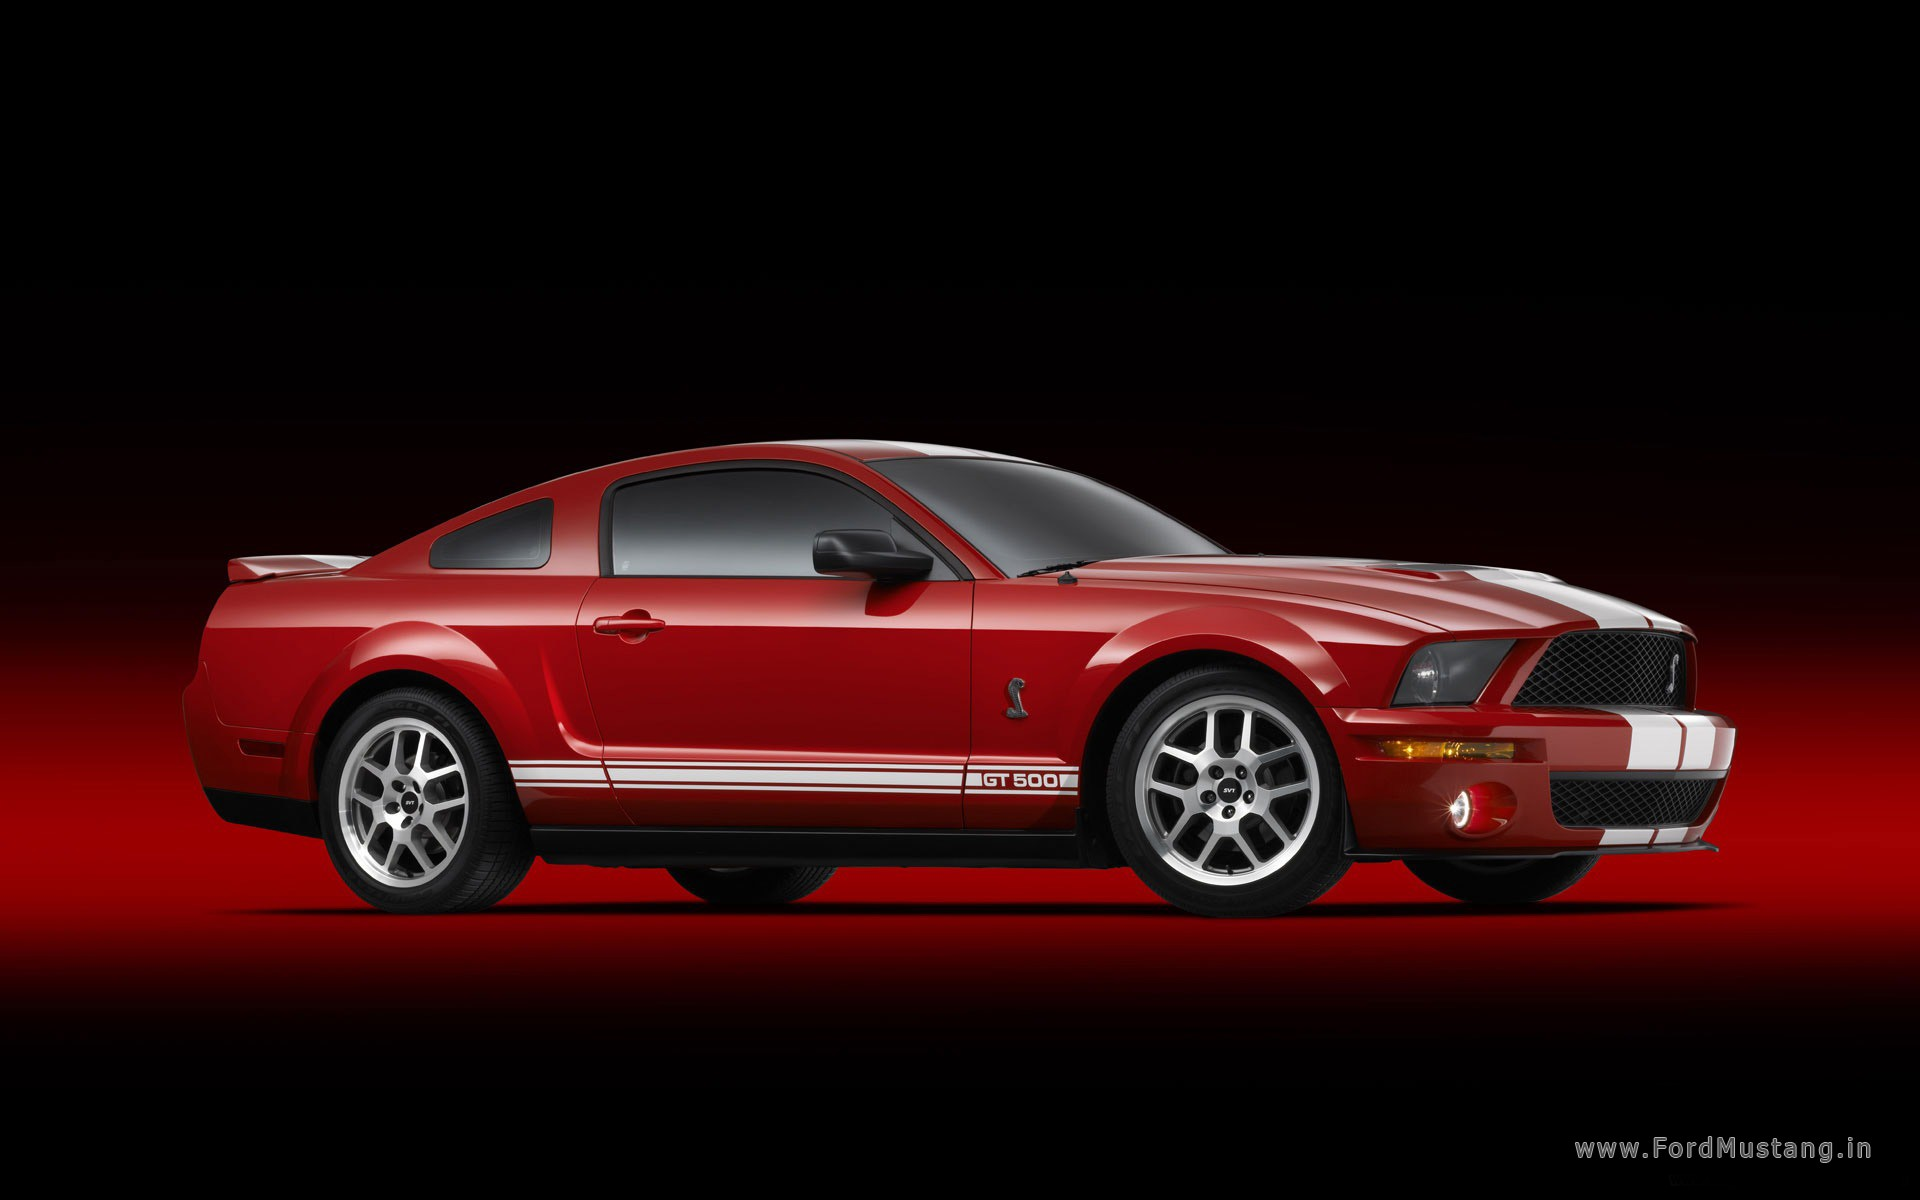 Ford Mustang Shelby Gt500 2007 Wallpapers Ford Mustang